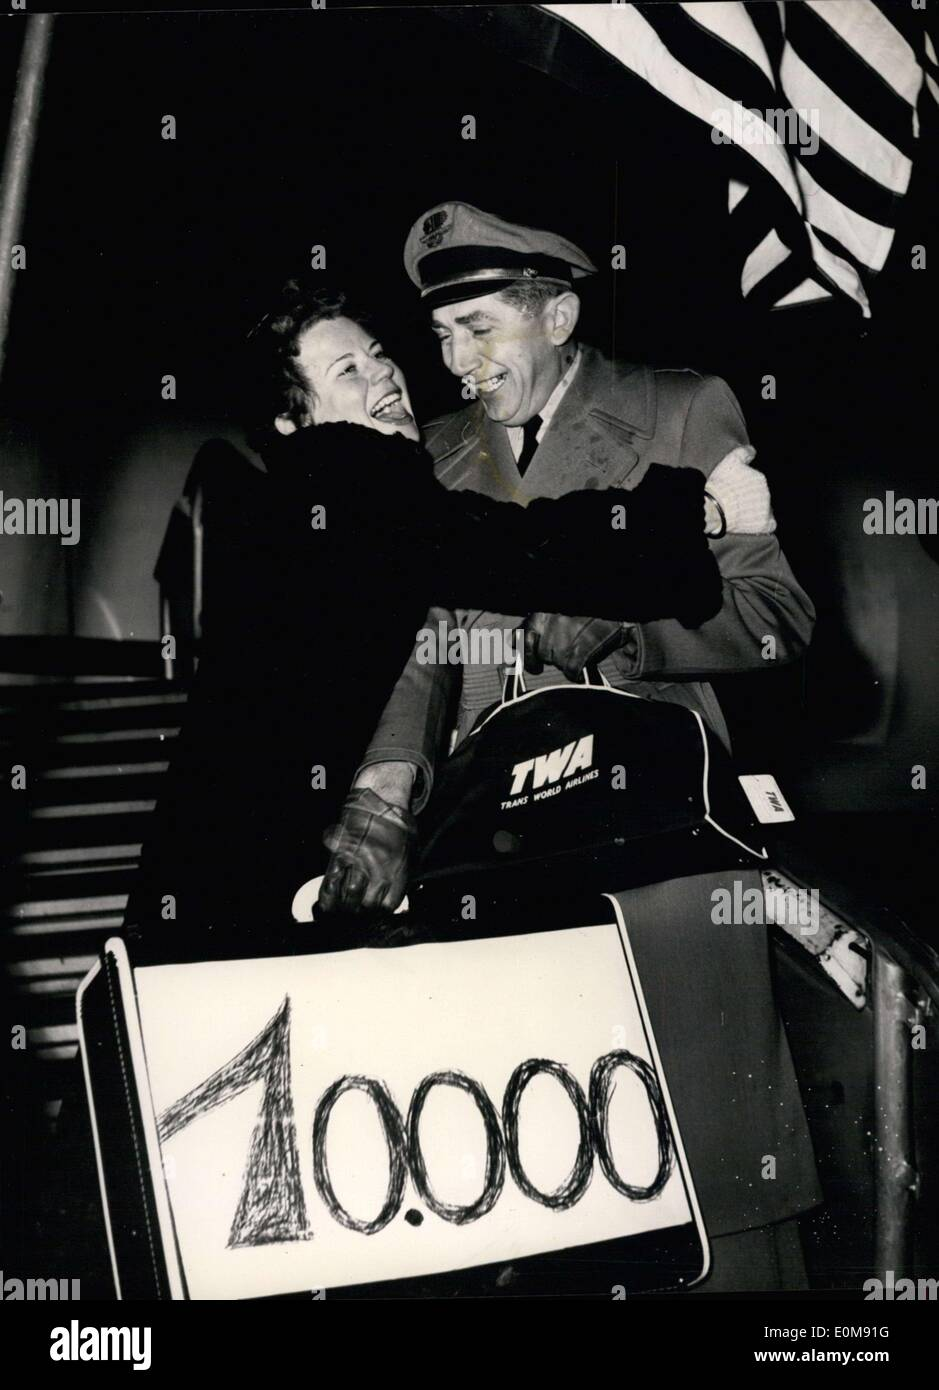 Feb. 03, 1954 - The German-American exchange program celebrates a threefold anniversary today. Departing from the Rhein-Main airport, thirty two year old translator Hilda Wiehers from Essen was the 10,000th German to leave her home in order to spend a three-month study trip in the United States. It is the 500th flight to bring a study group to the USA, with the first being five years ago today. Pictured: Radiant with joy, Ms. Wiehers flings her arms around flight captain Pretsch's neck when he greets her before boarding the plane. - Stock Image